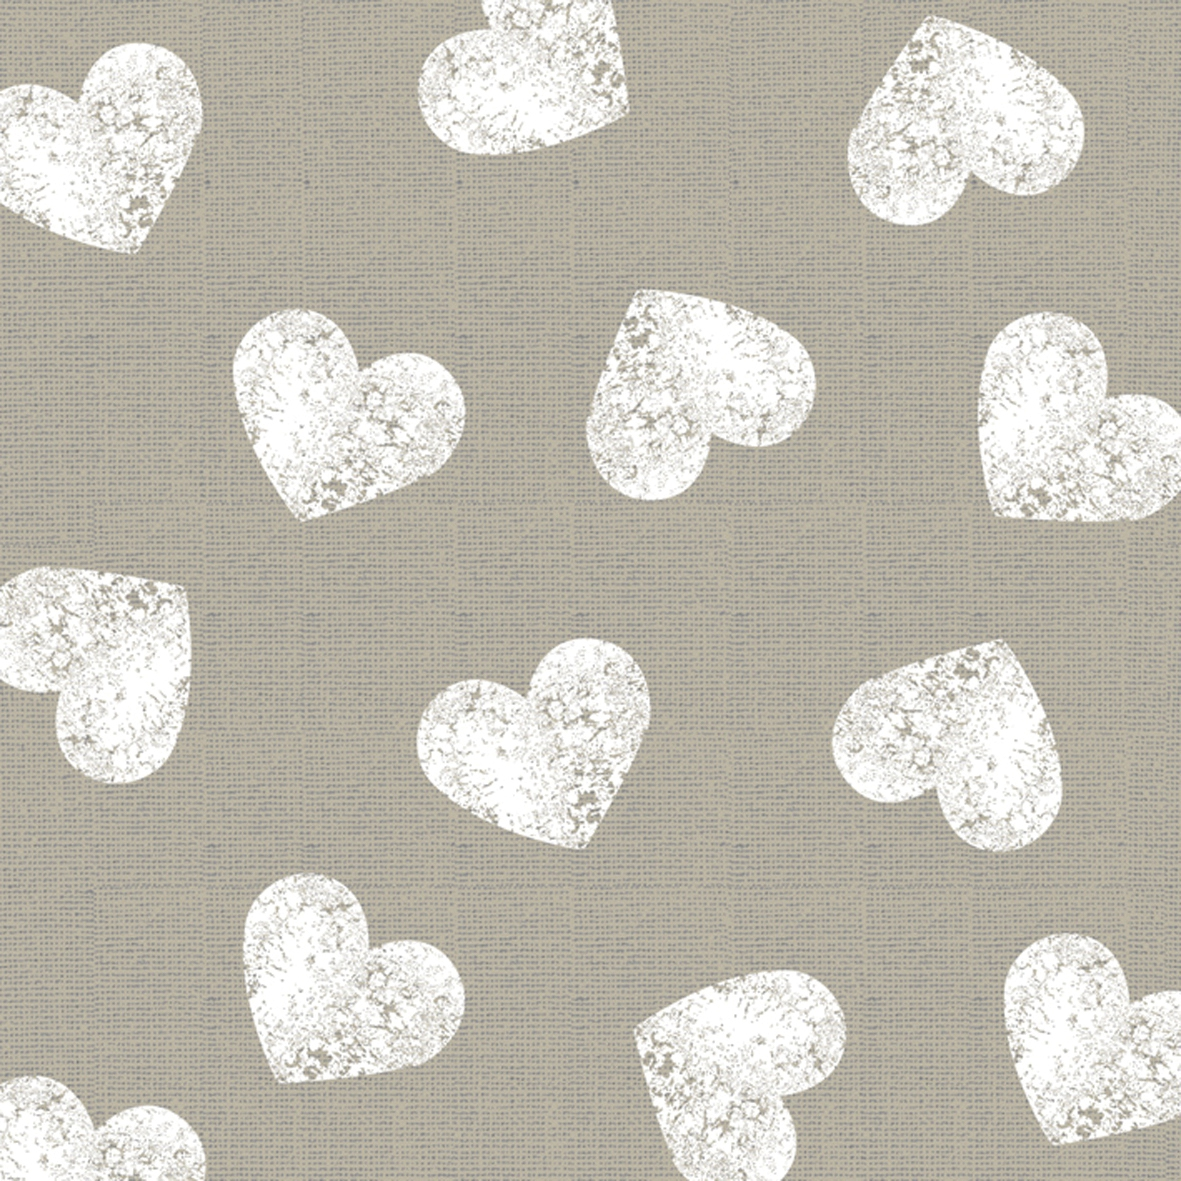 Cocktail Servietten Fashion Hearts taupe white 25x25 cm,  Sonstiges - Muster,  Everyday,  cocktail servietten,  Herzen